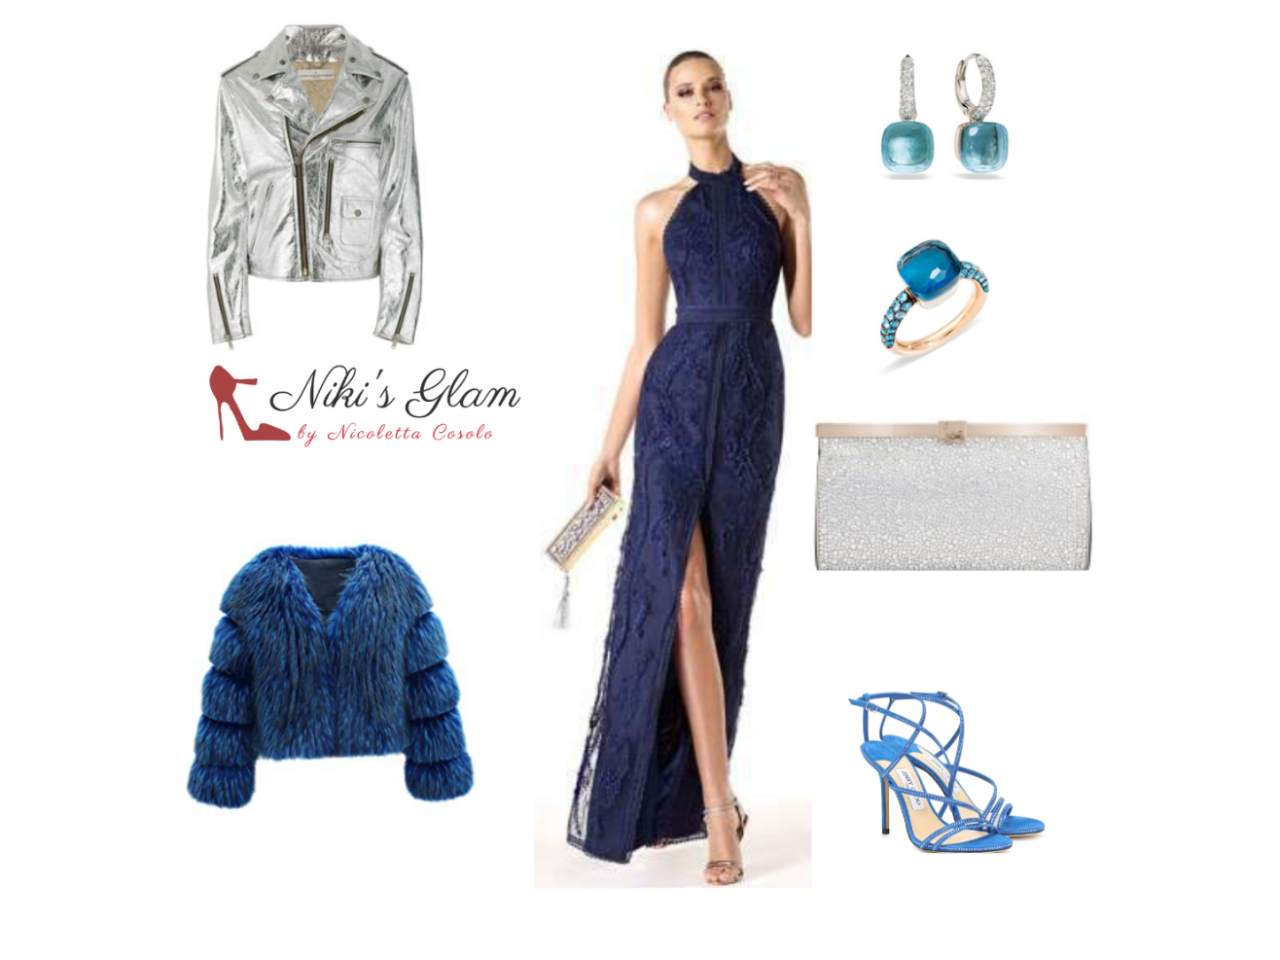 nuovo-outfit -per natale  - Niki's Glam Blog